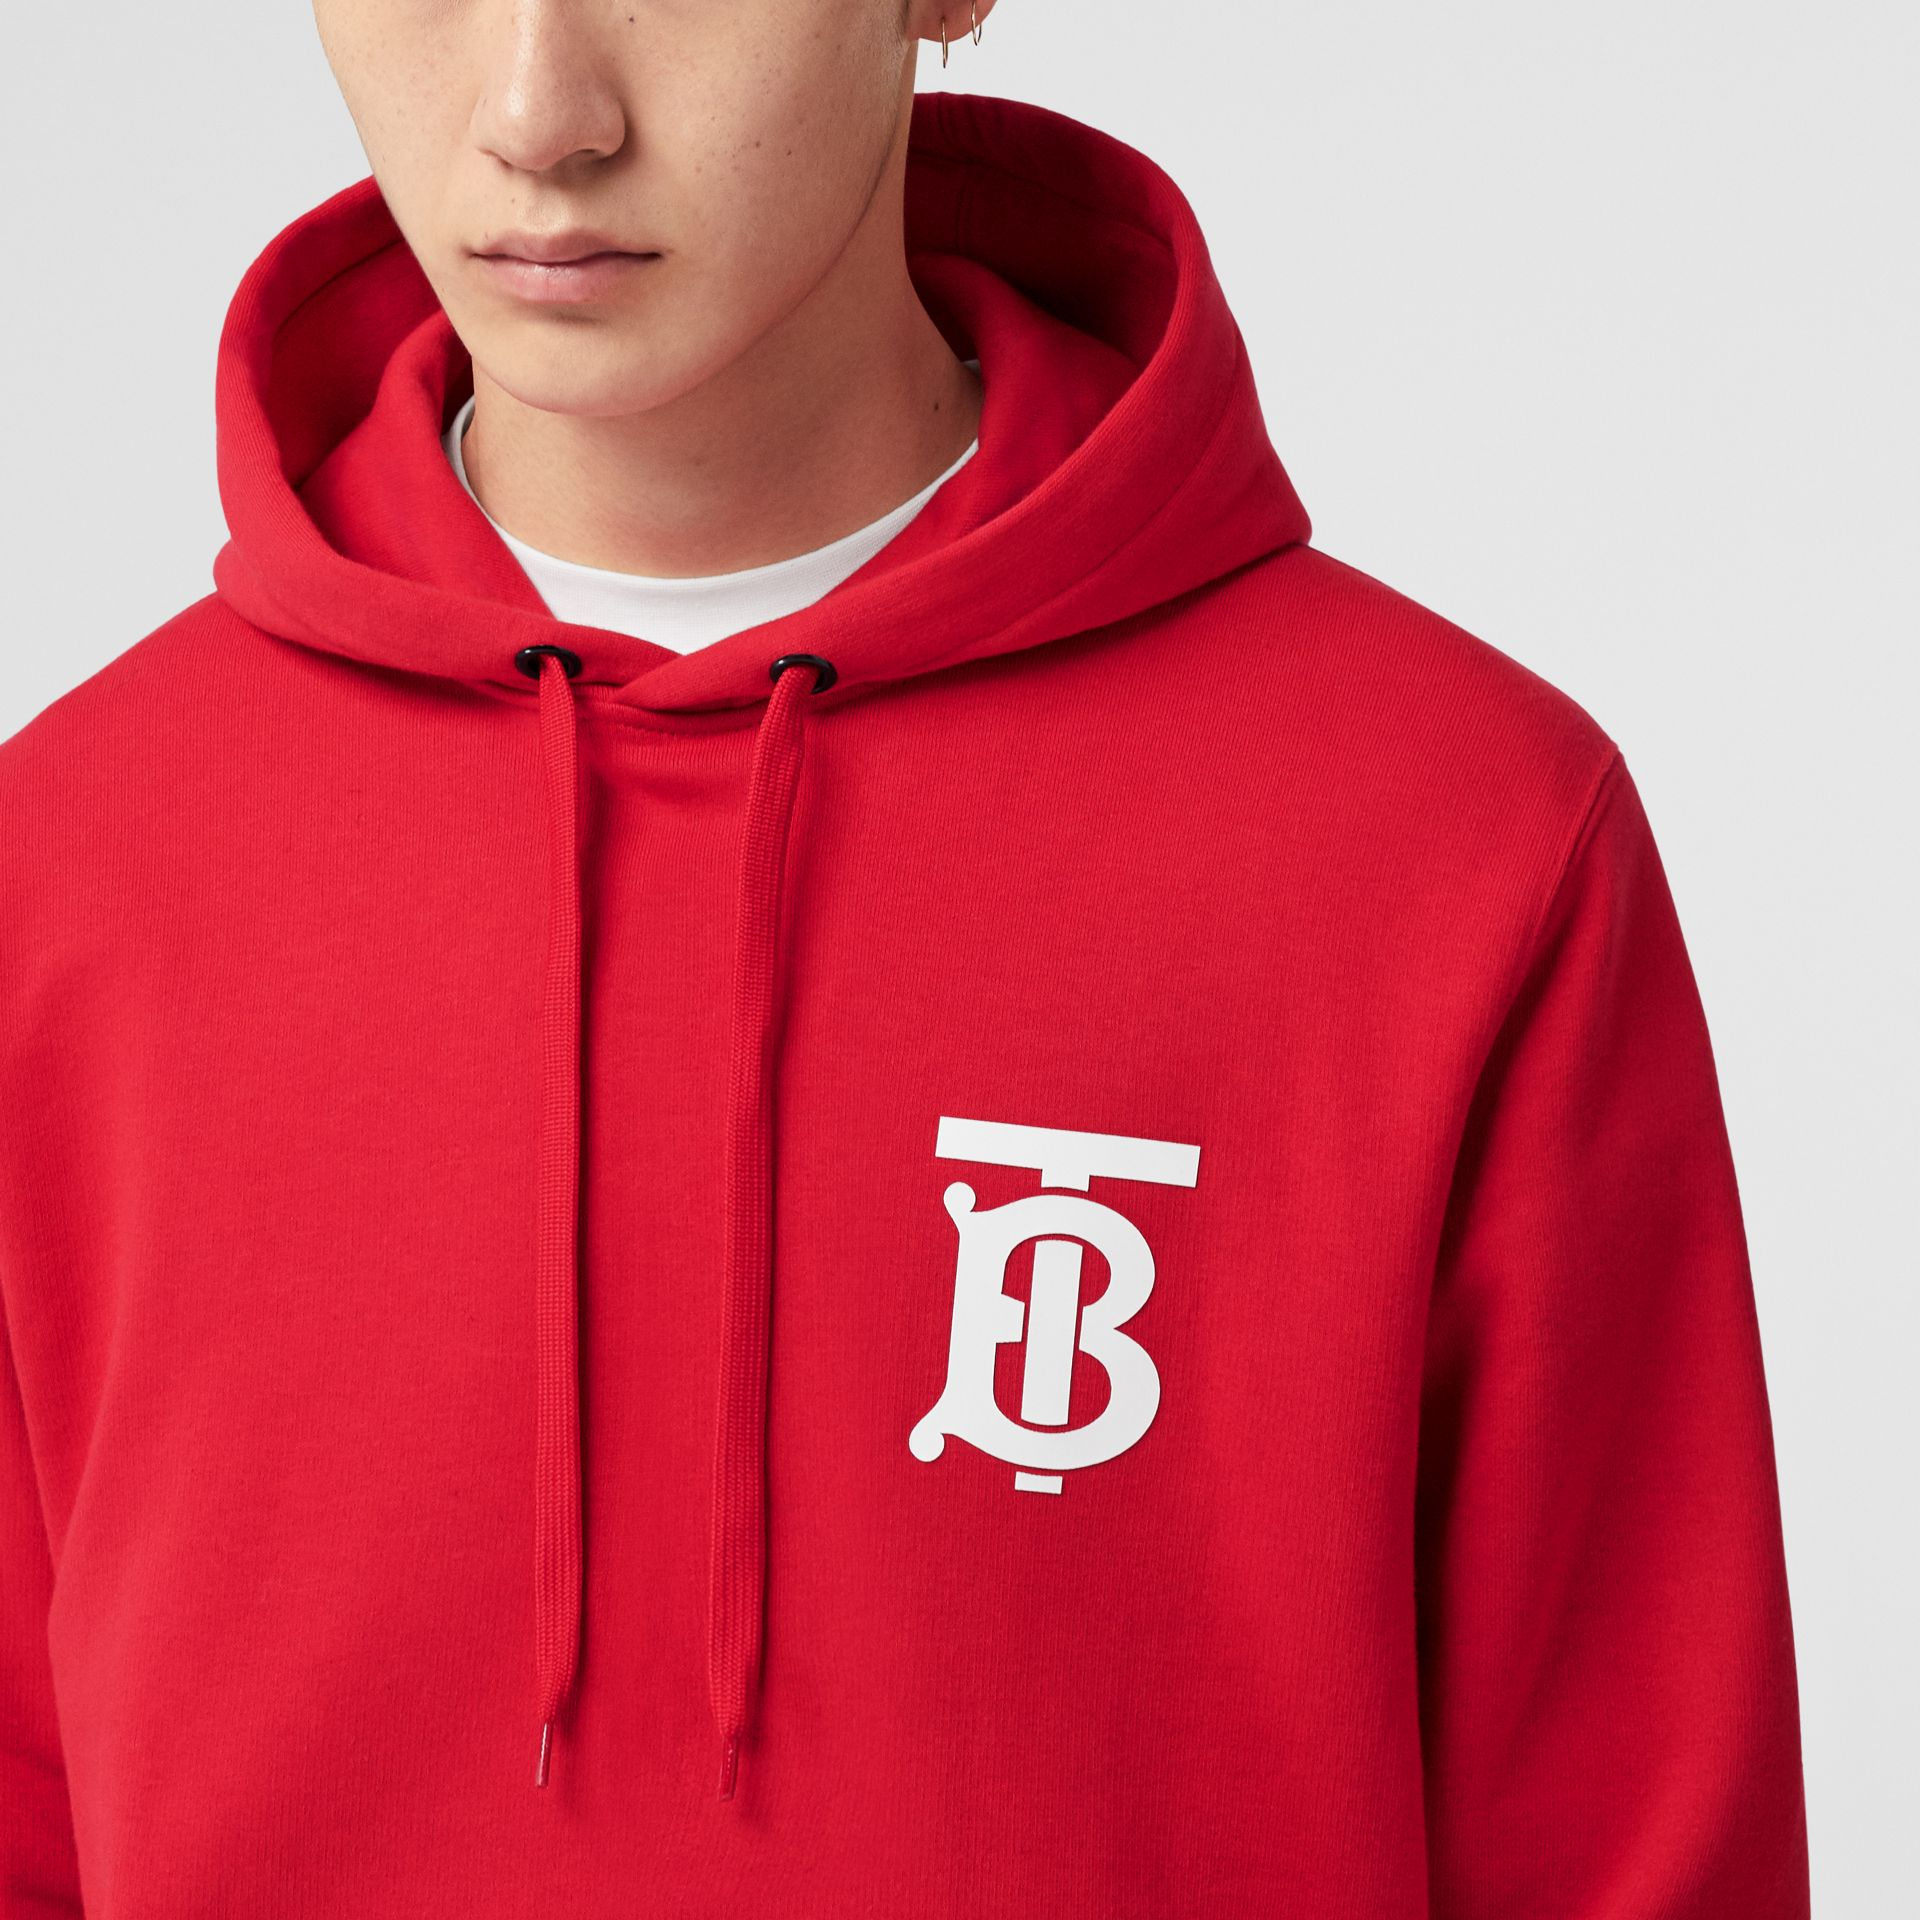 Monogram Motif Cotton Hoodie in Bright Red - Men | Burberry United Kingdom - gallery image 1